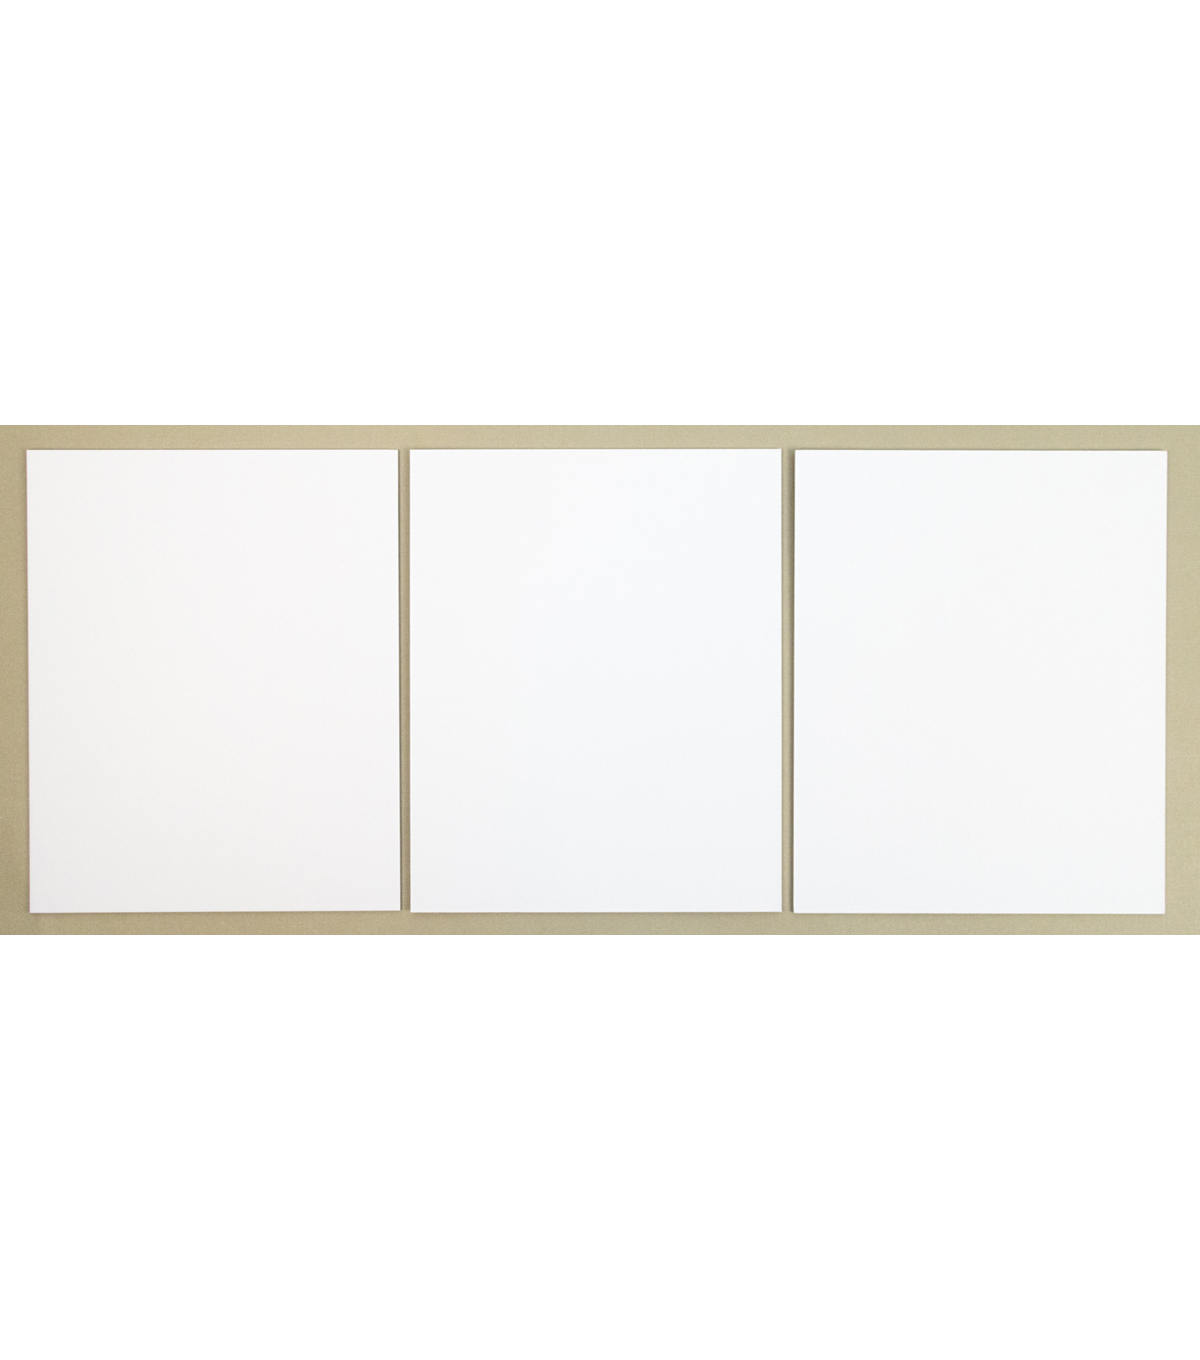 8\'\'X10\'\' 3 Pack Of White Matboard Sheets | JOANN